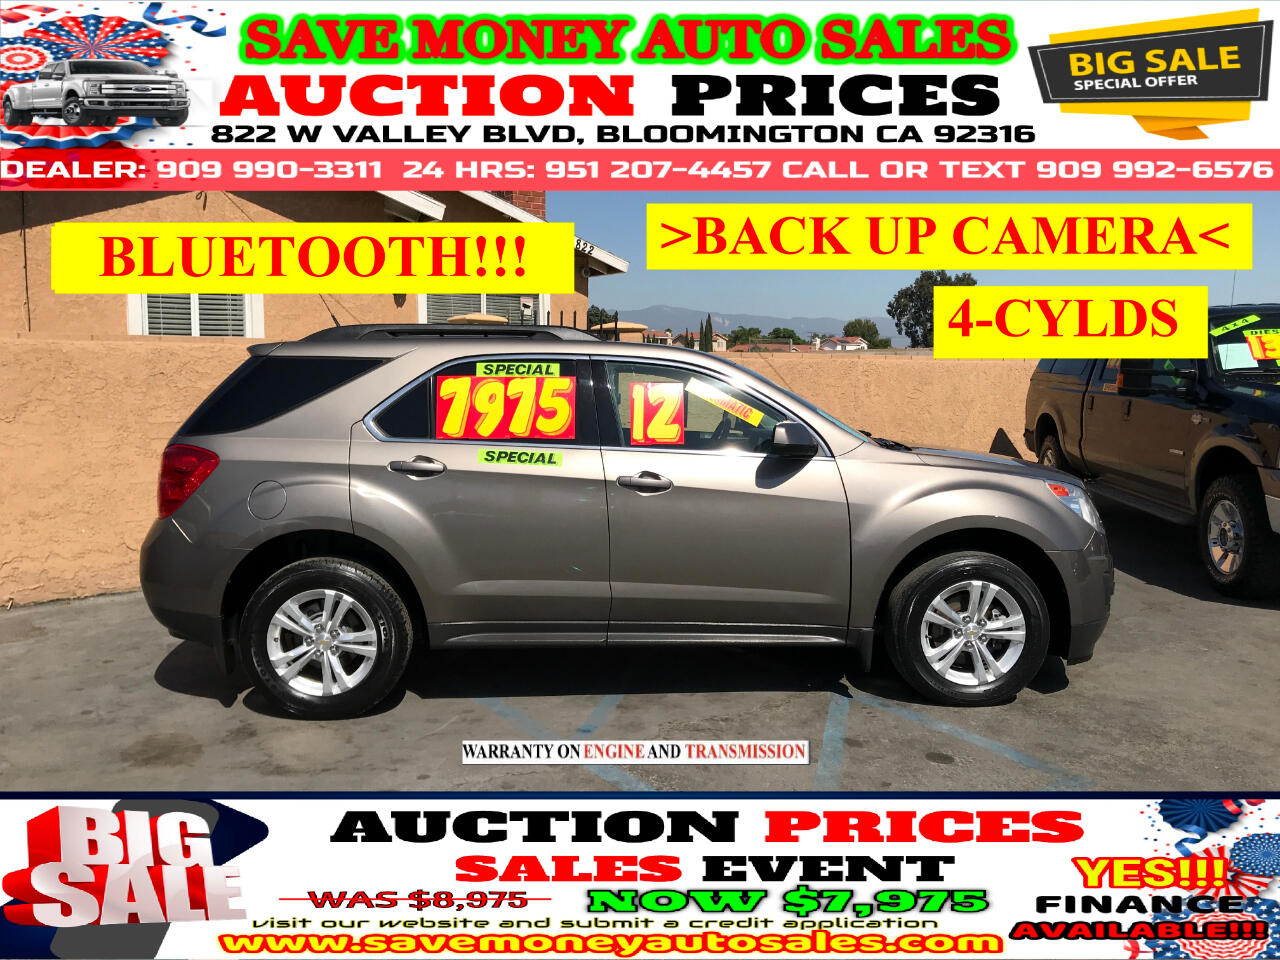 2012 Chevrolet Equinox LT>4CYLDS>PLUS BLUETOOTH,BACK UP CAMERA AND MORE!!